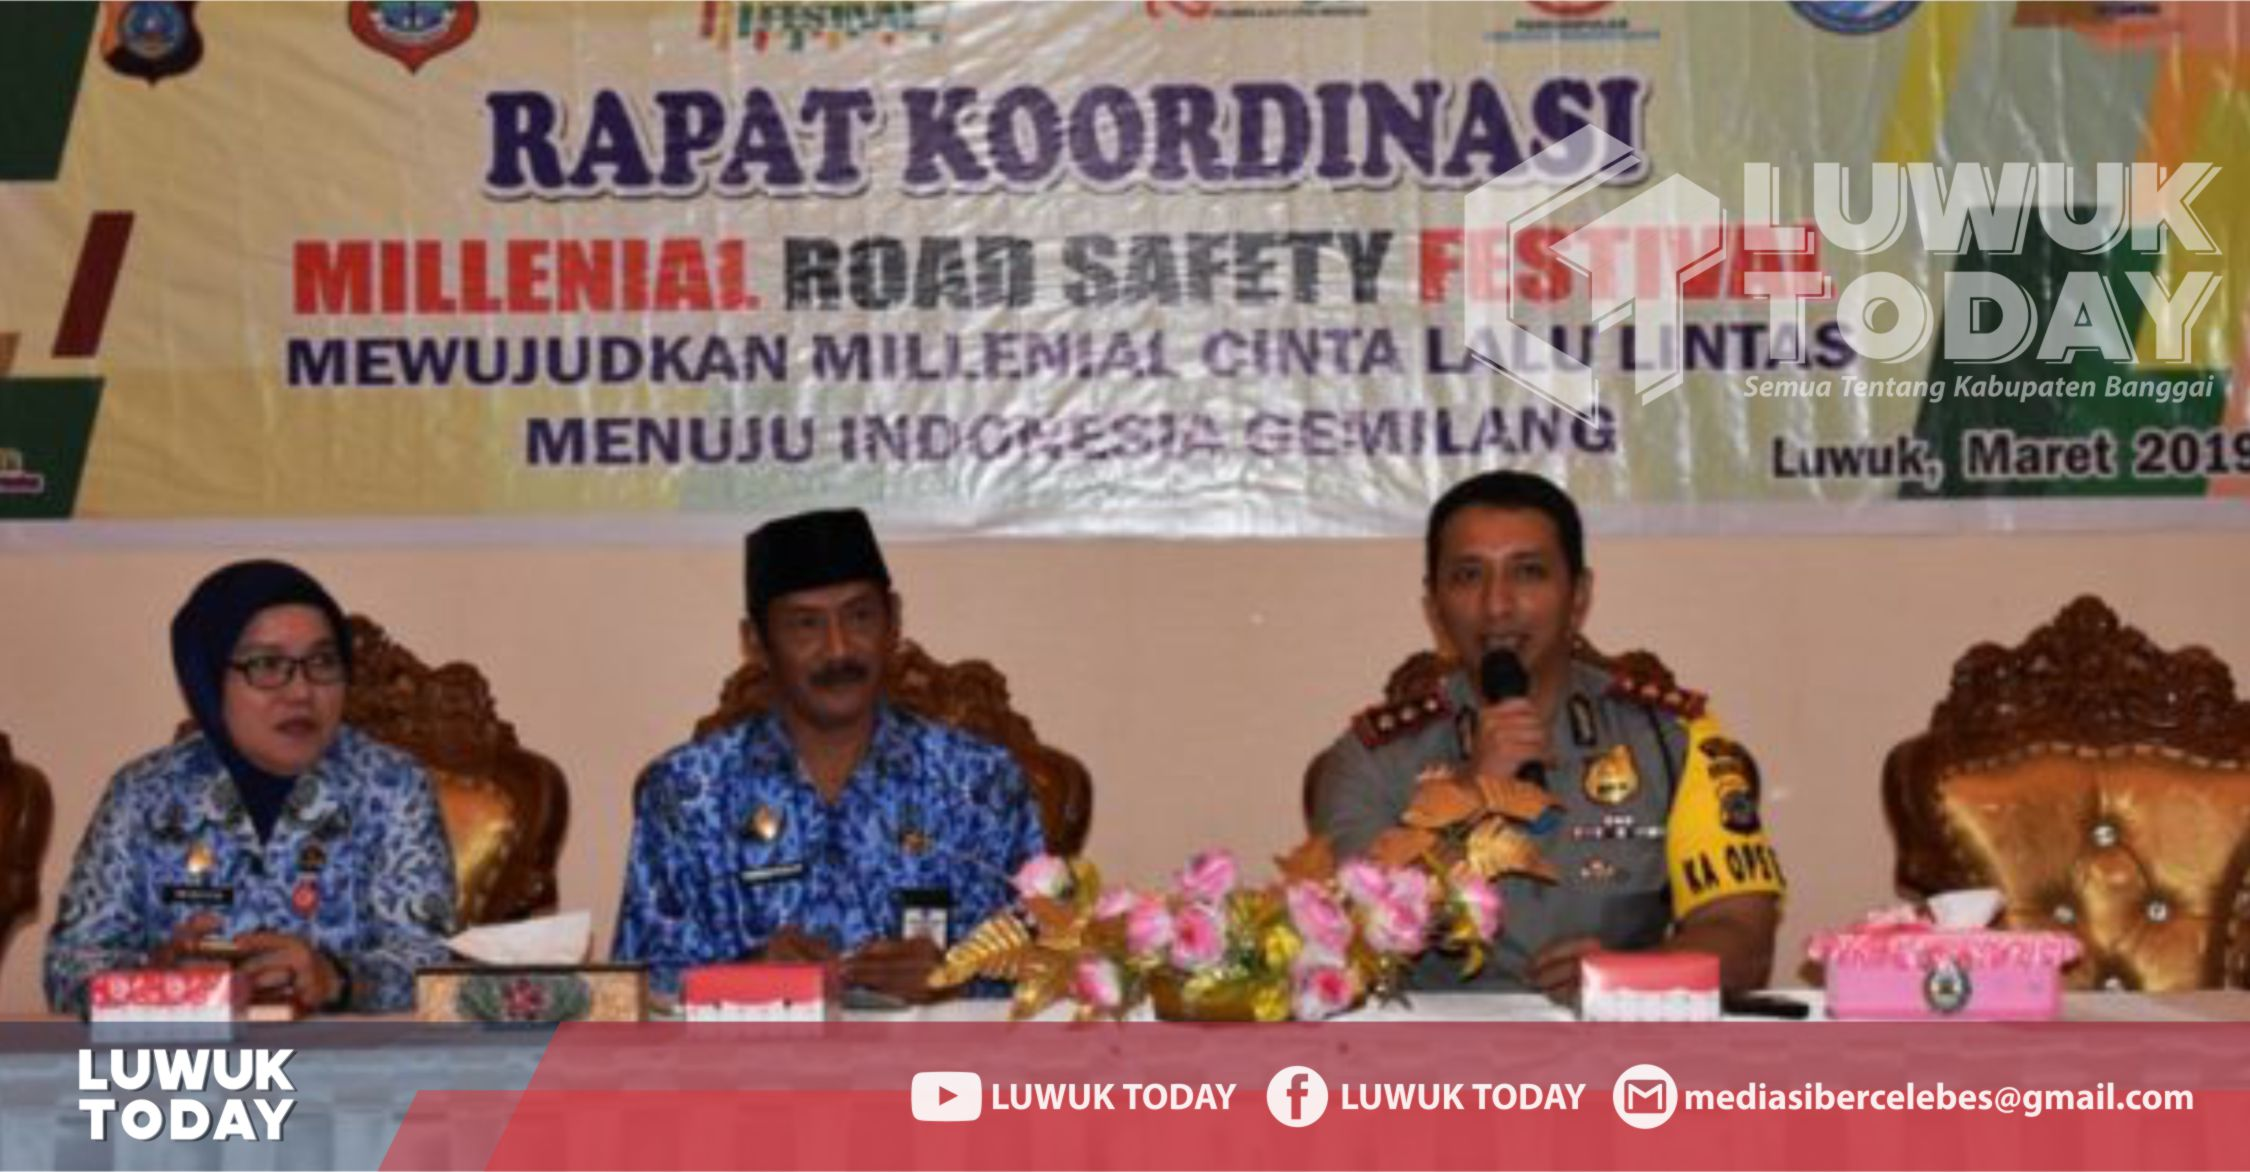 Photo of Event Nasional Millenial Road Safety Festival 2019 Digelar Di Luwuk